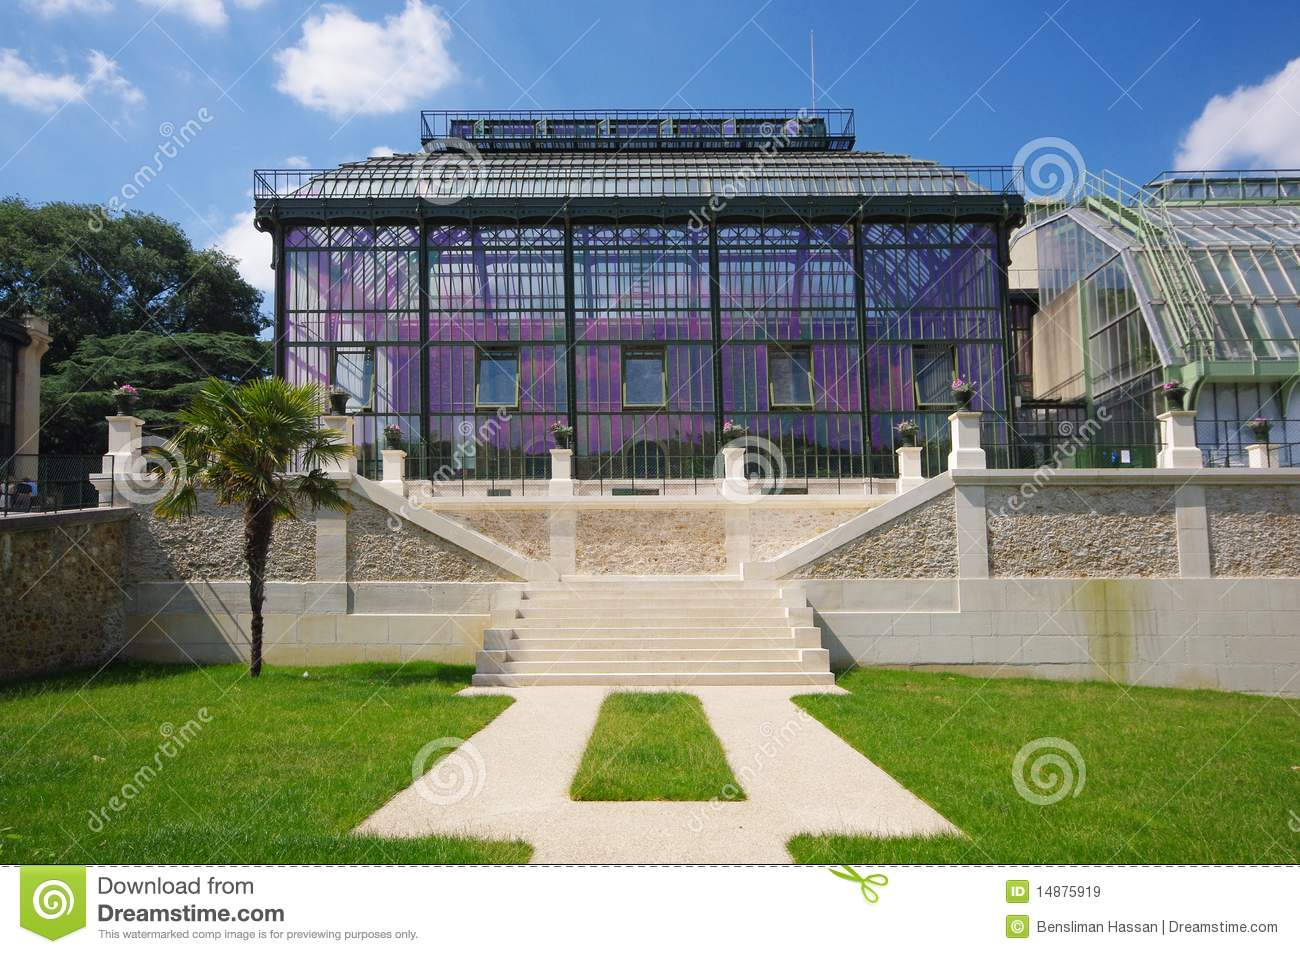 Paris greenhouse in jardin des plantes stock image image for Paris jardin plantes